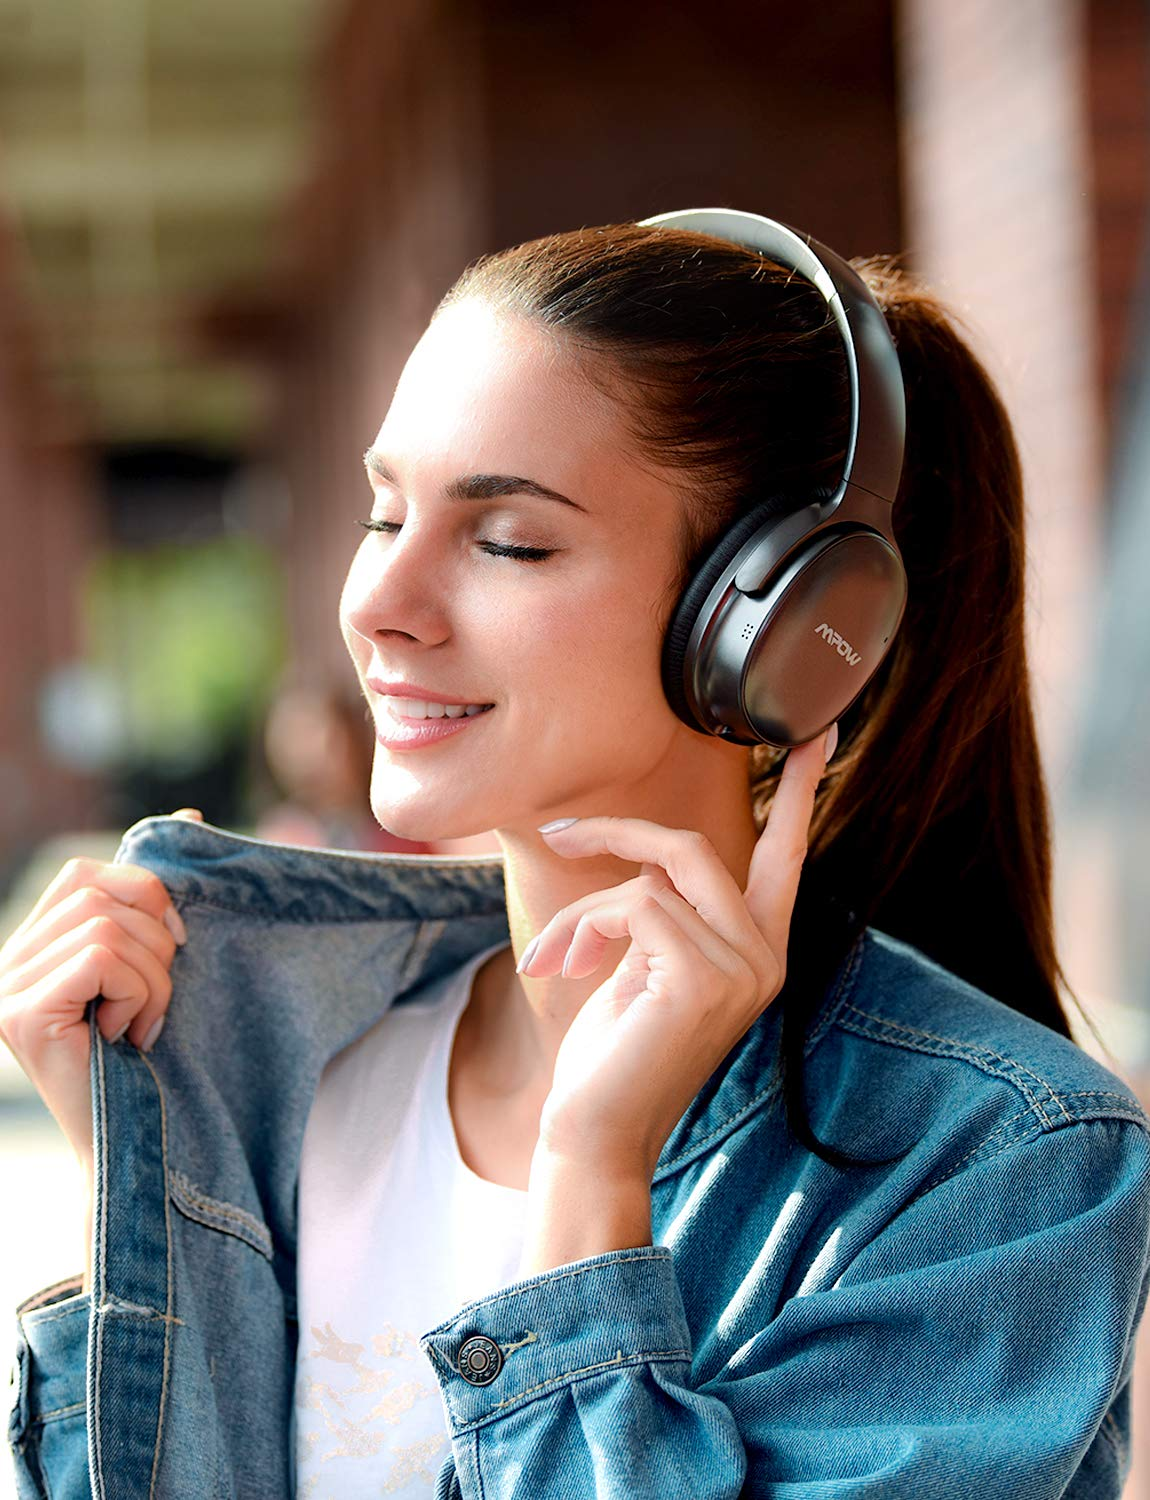 Mpow H10 [2019 Edition] Dual-Mic Active Noise Cancelling Bluetooth Headphones, ANC Over-Ear Wireless Headphones with CVC 6.0 Microphone, Hi-Fi Deep Bass, Foldable Headset for Travel/Work by Mpow (Image #6)